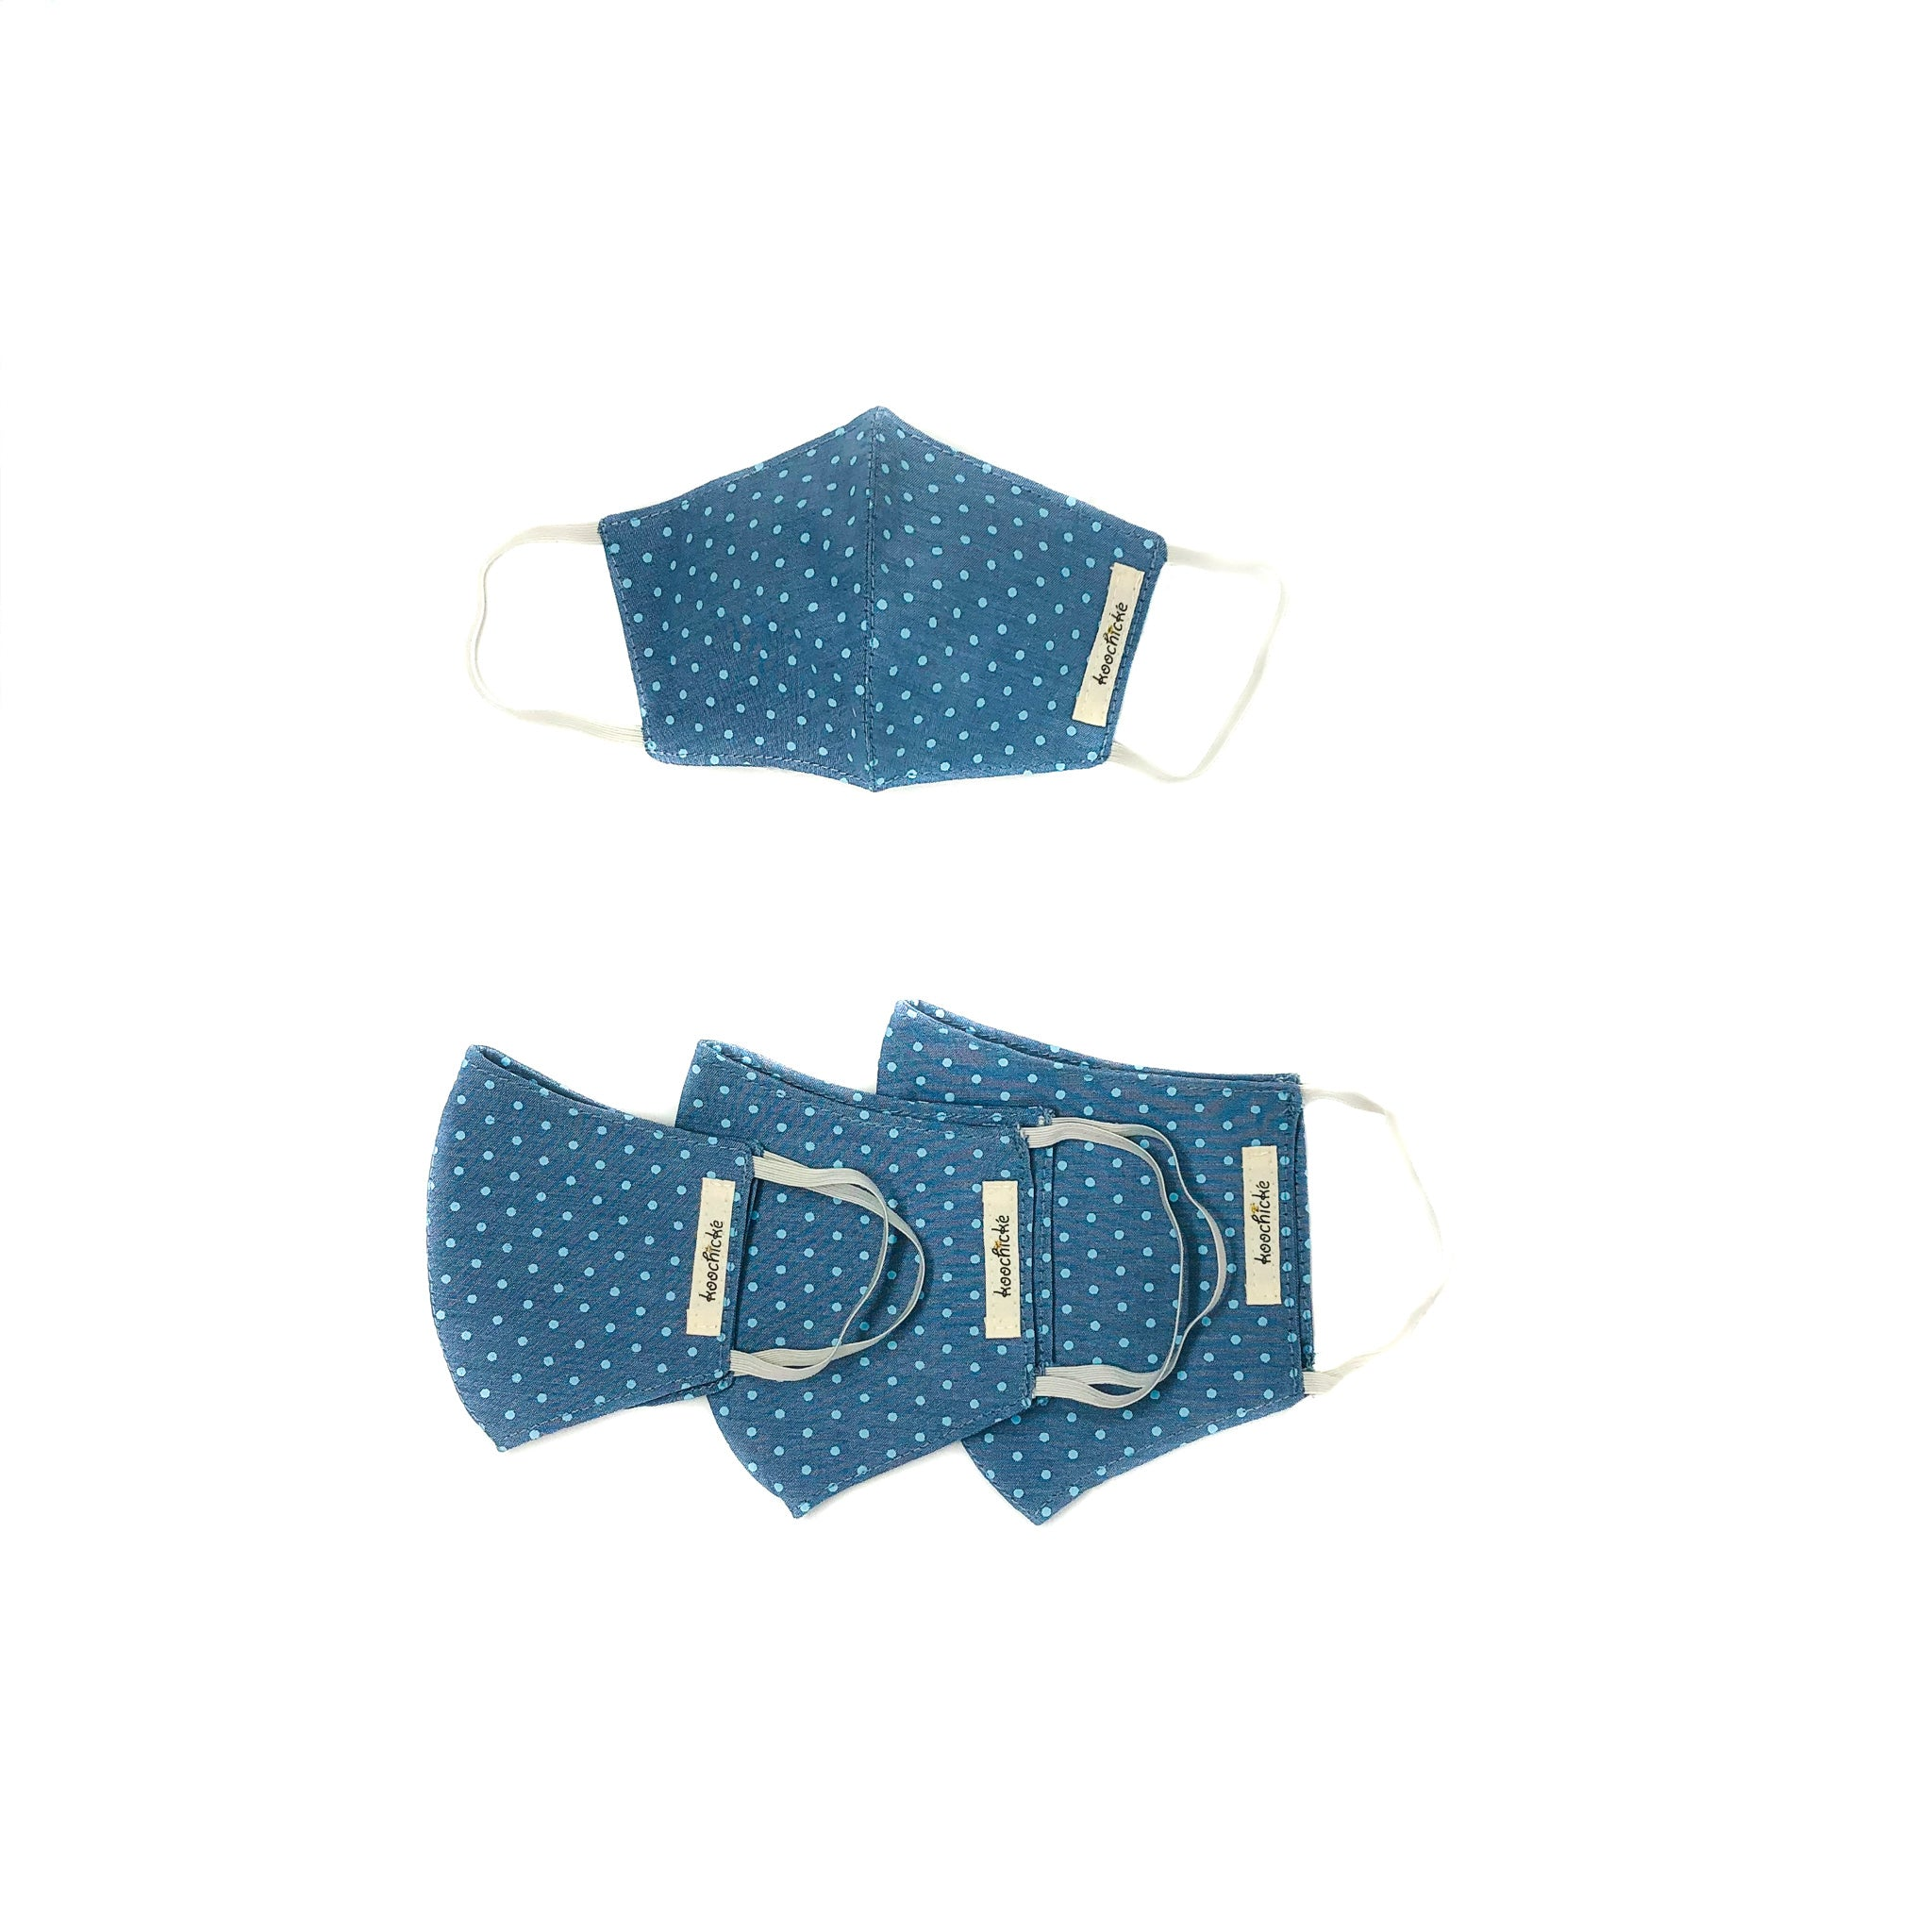 Blue Polka Dot Mask- Family Package (4 pcs)